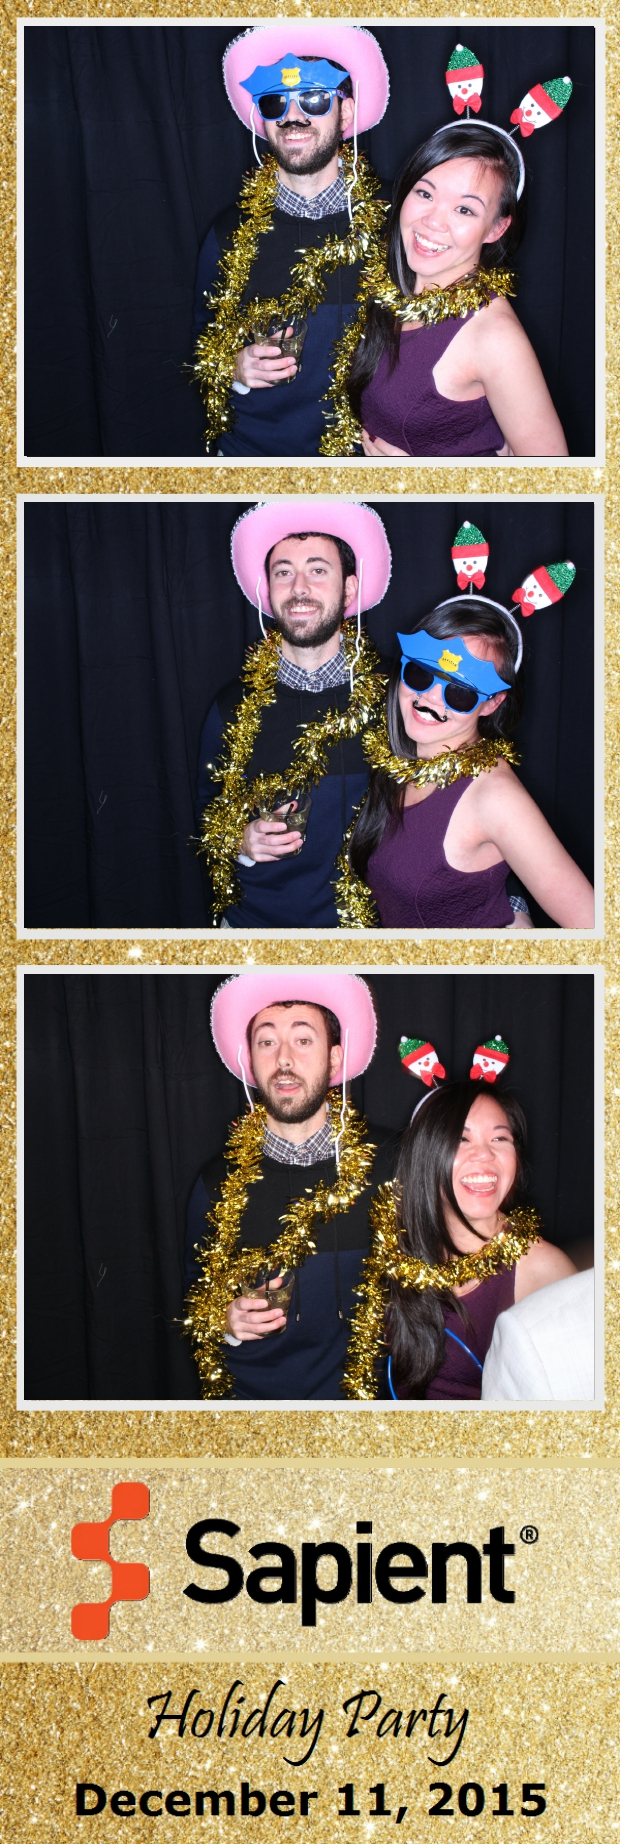 Guest House Events Photo Booth Sapient Holiday Party (45).jpg